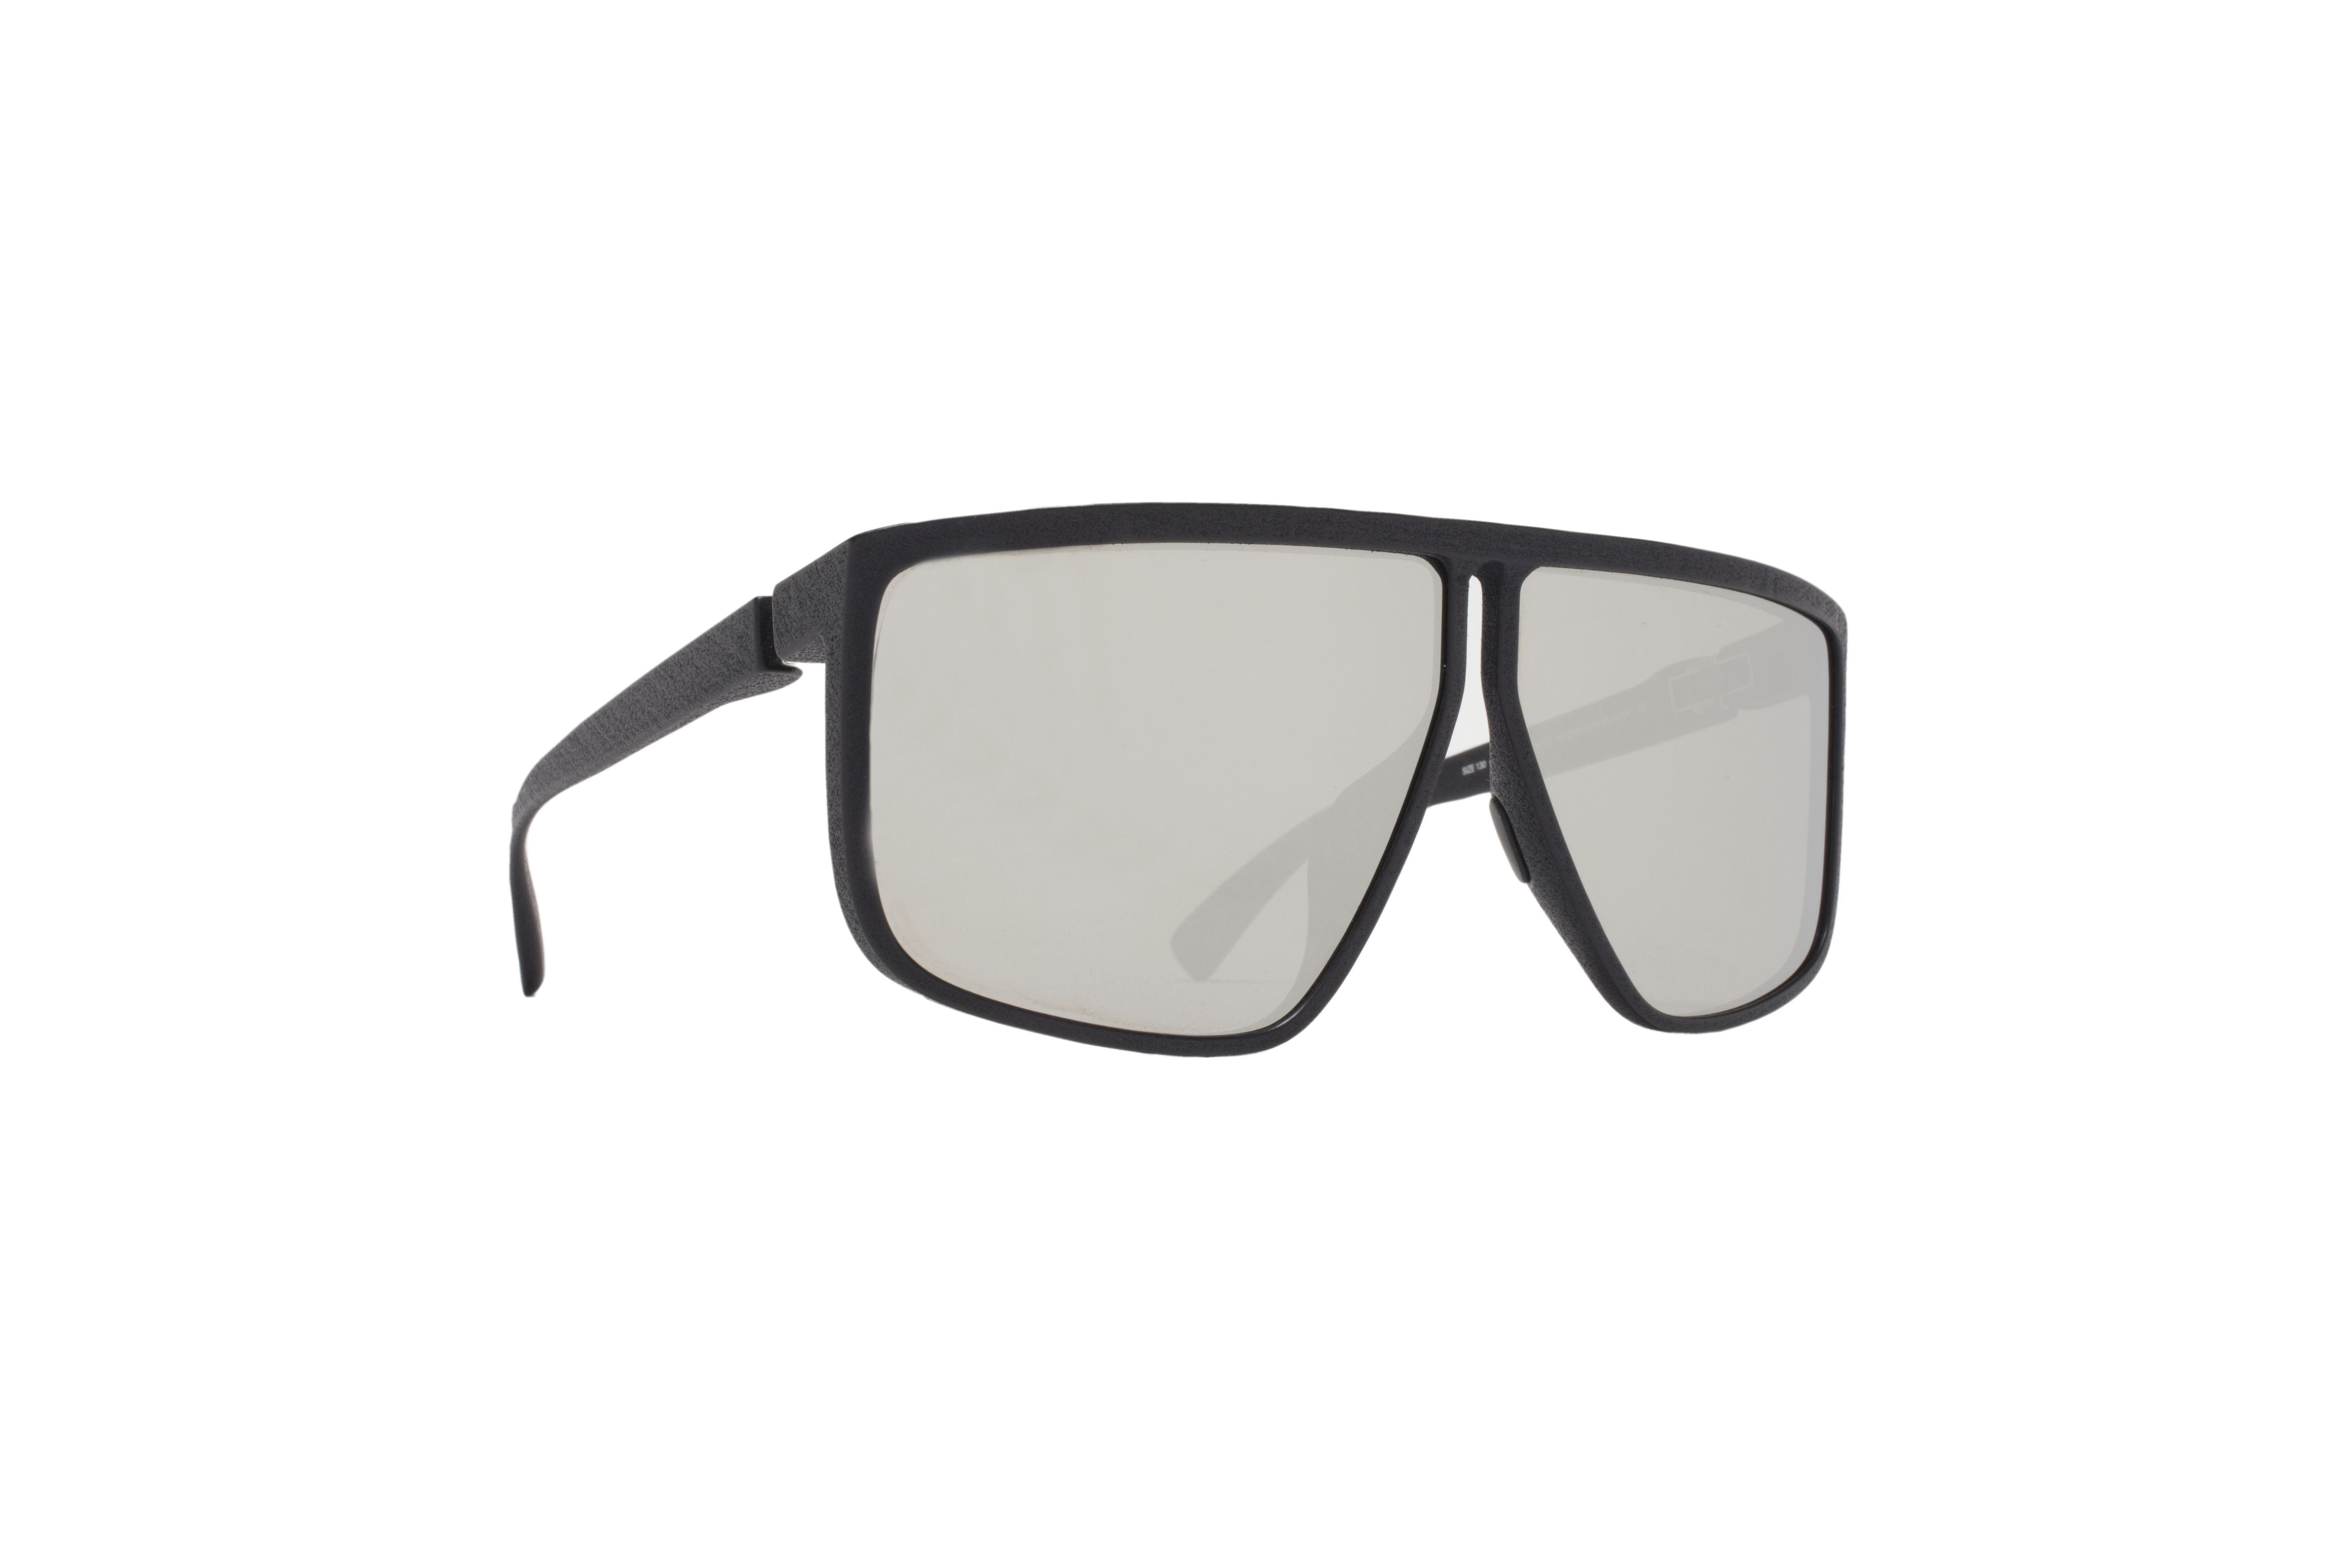 MYKITA Tc Tequila Md1 Pitch Black Silver Shiled